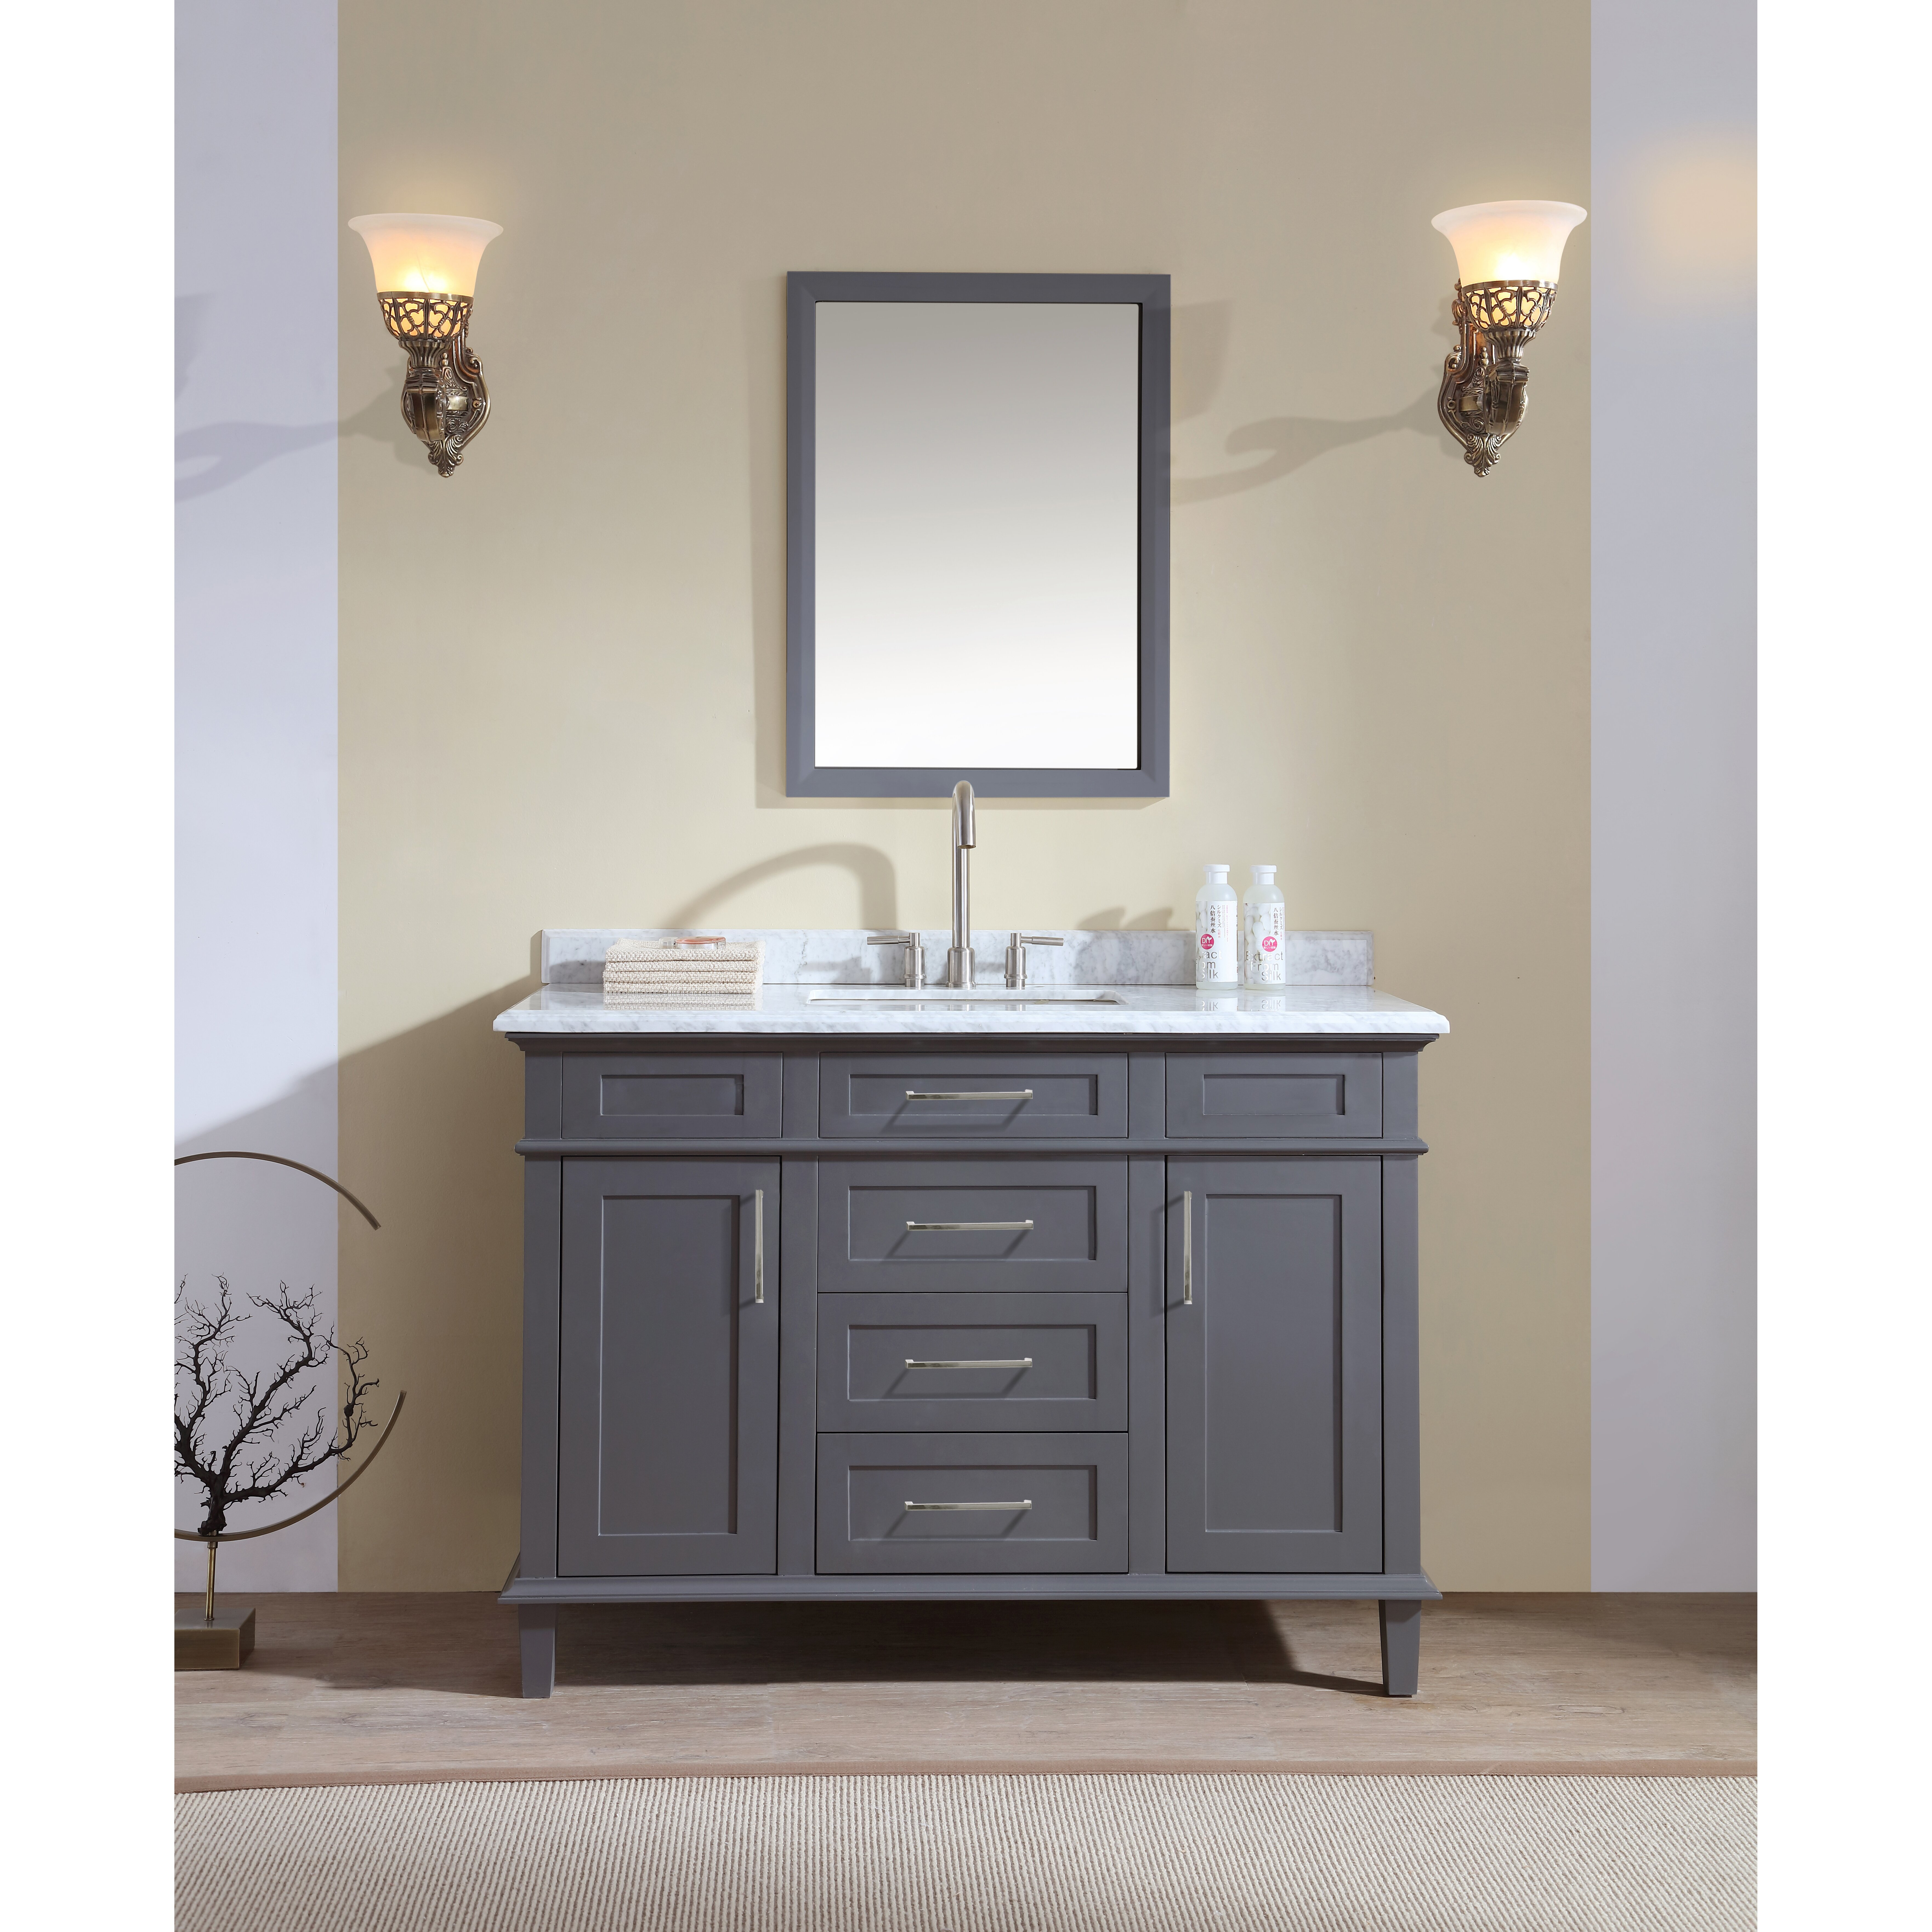 vintage bath slated the full bathroomvanity kiaat diego small vanities winslow goodwood solid san size clearance slatted wooden cabinet bathroom exciting double design of co best vanity tops ideas wood kitchen sale in with single cabinets unit